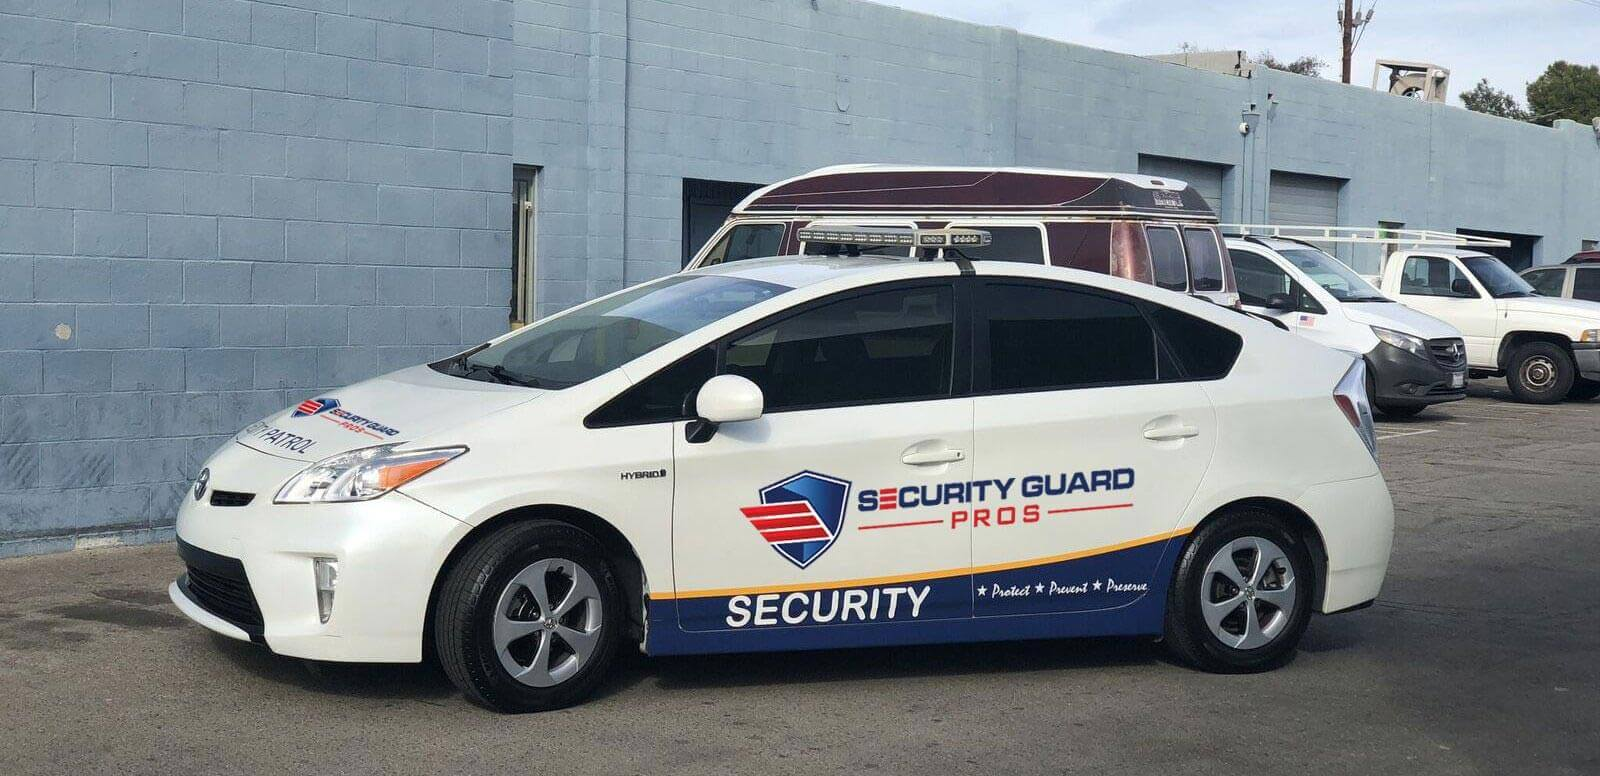 Los Angeles, Orange County Security Guards